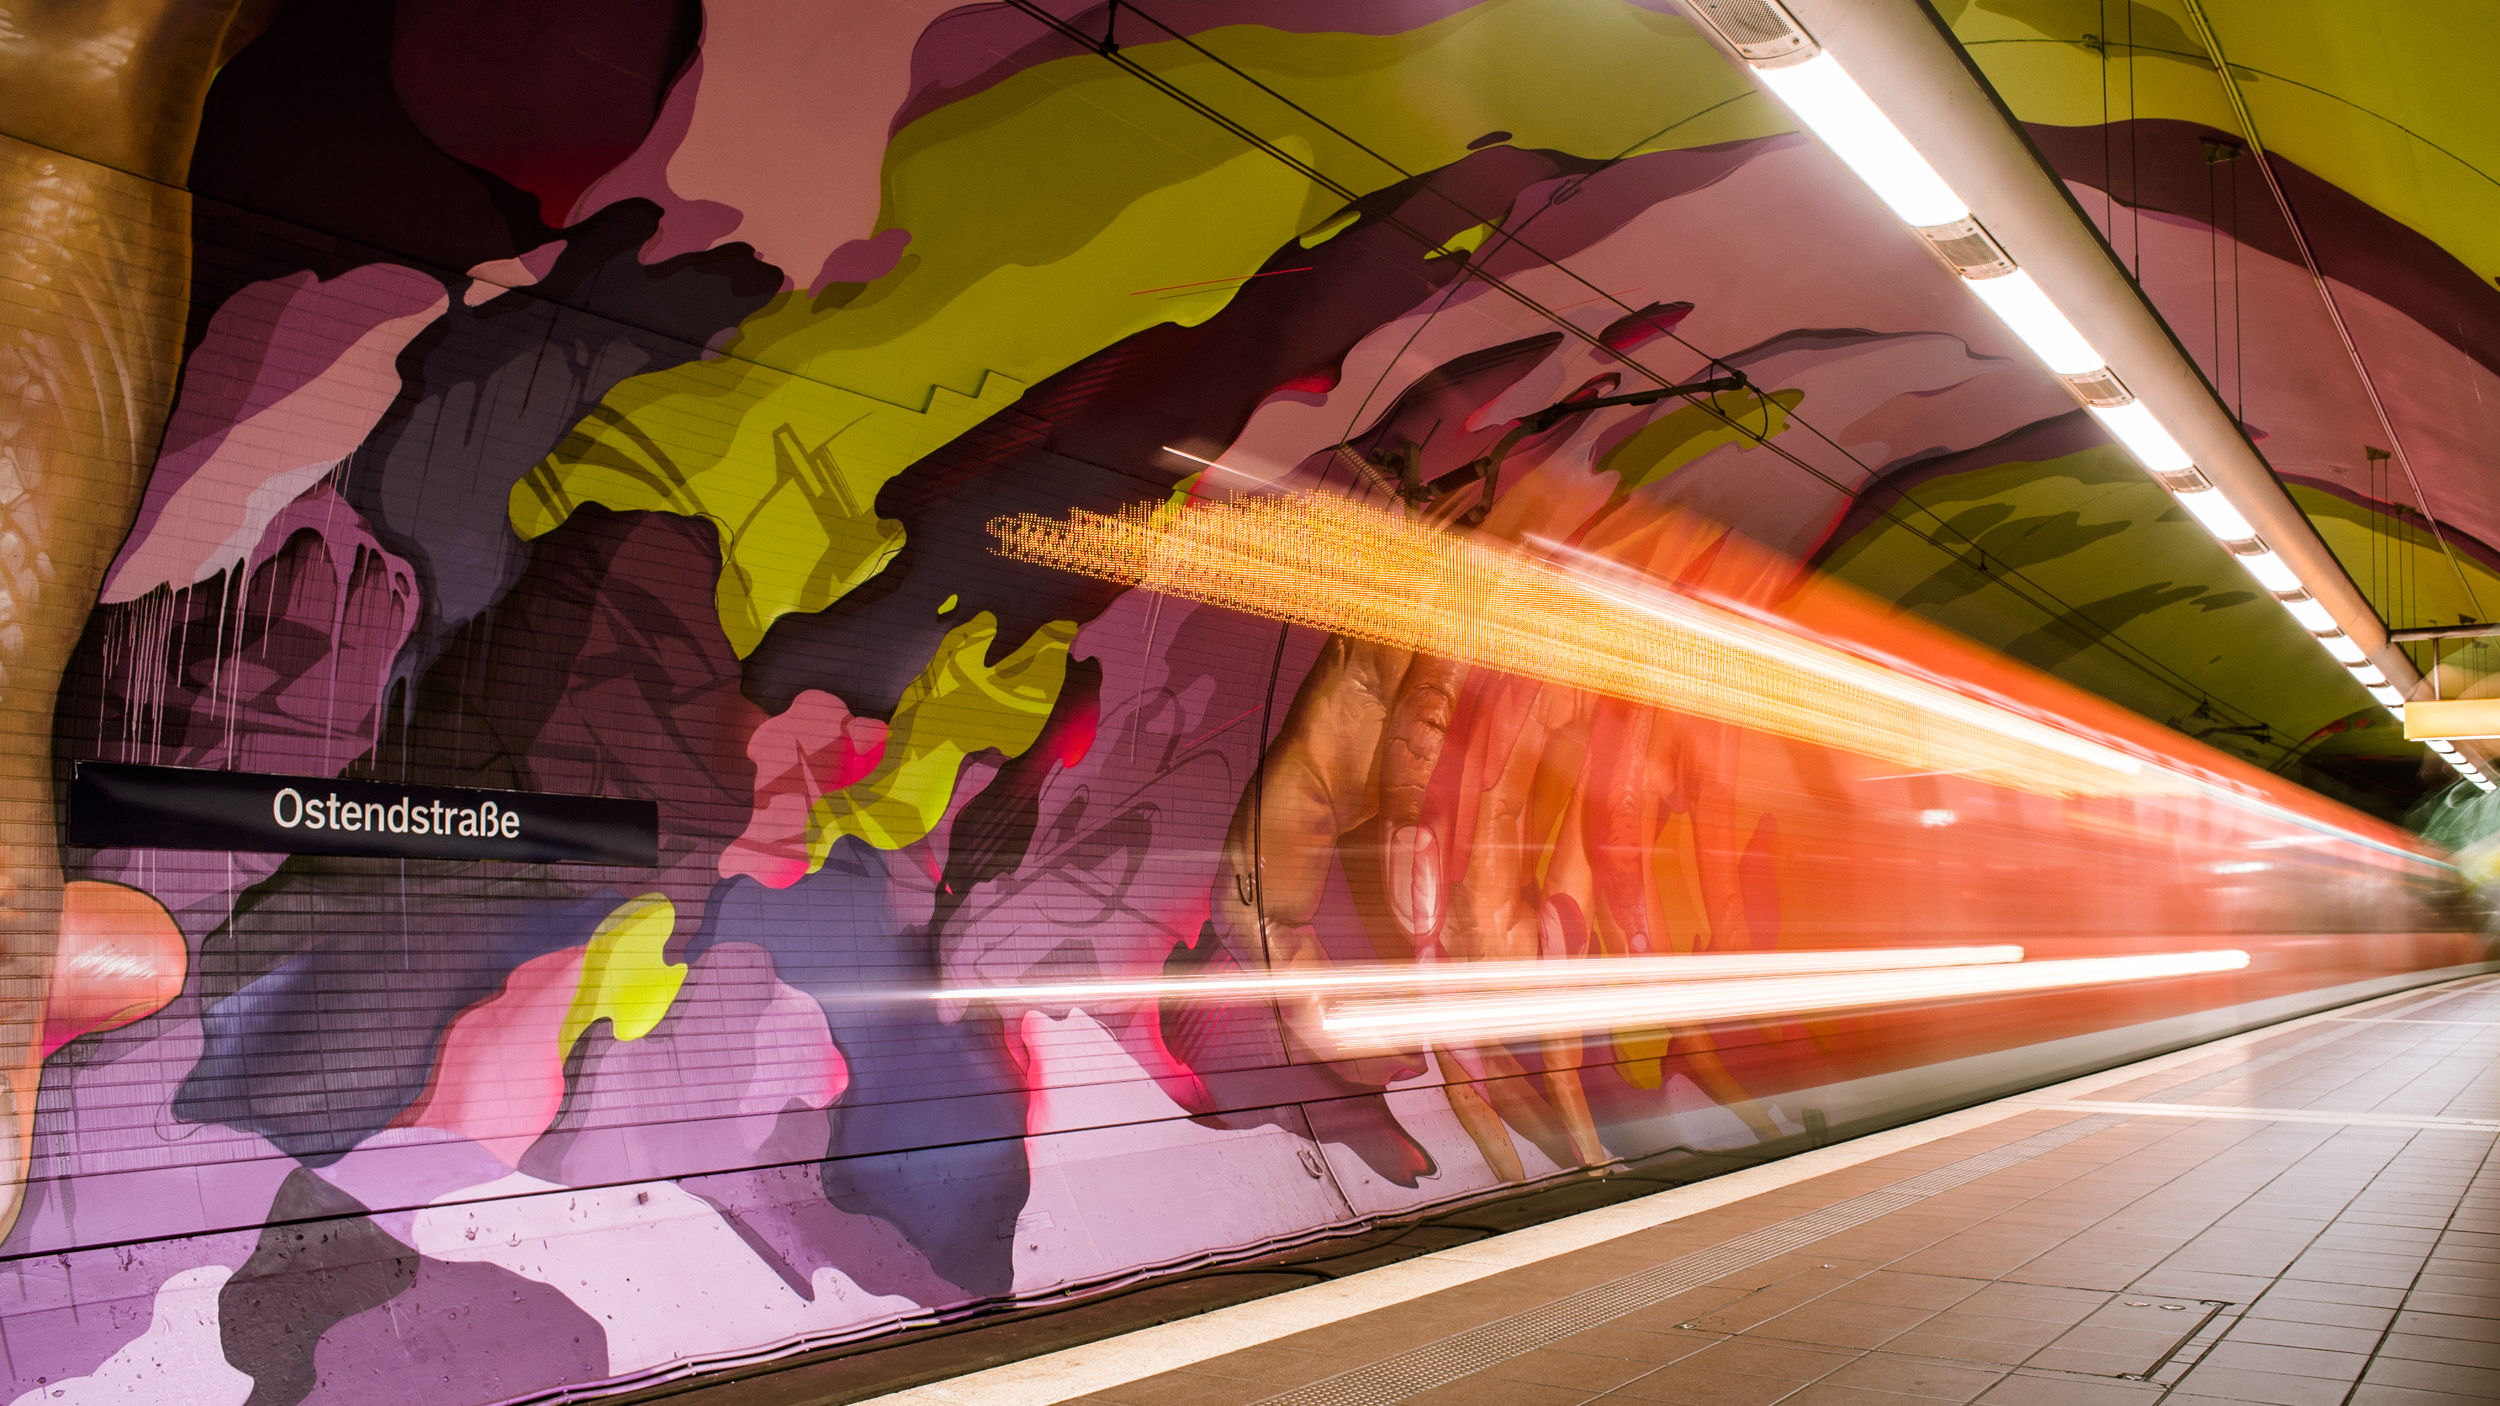 A work by Does - Ostendstrasse frankfurt germany tunnel 35